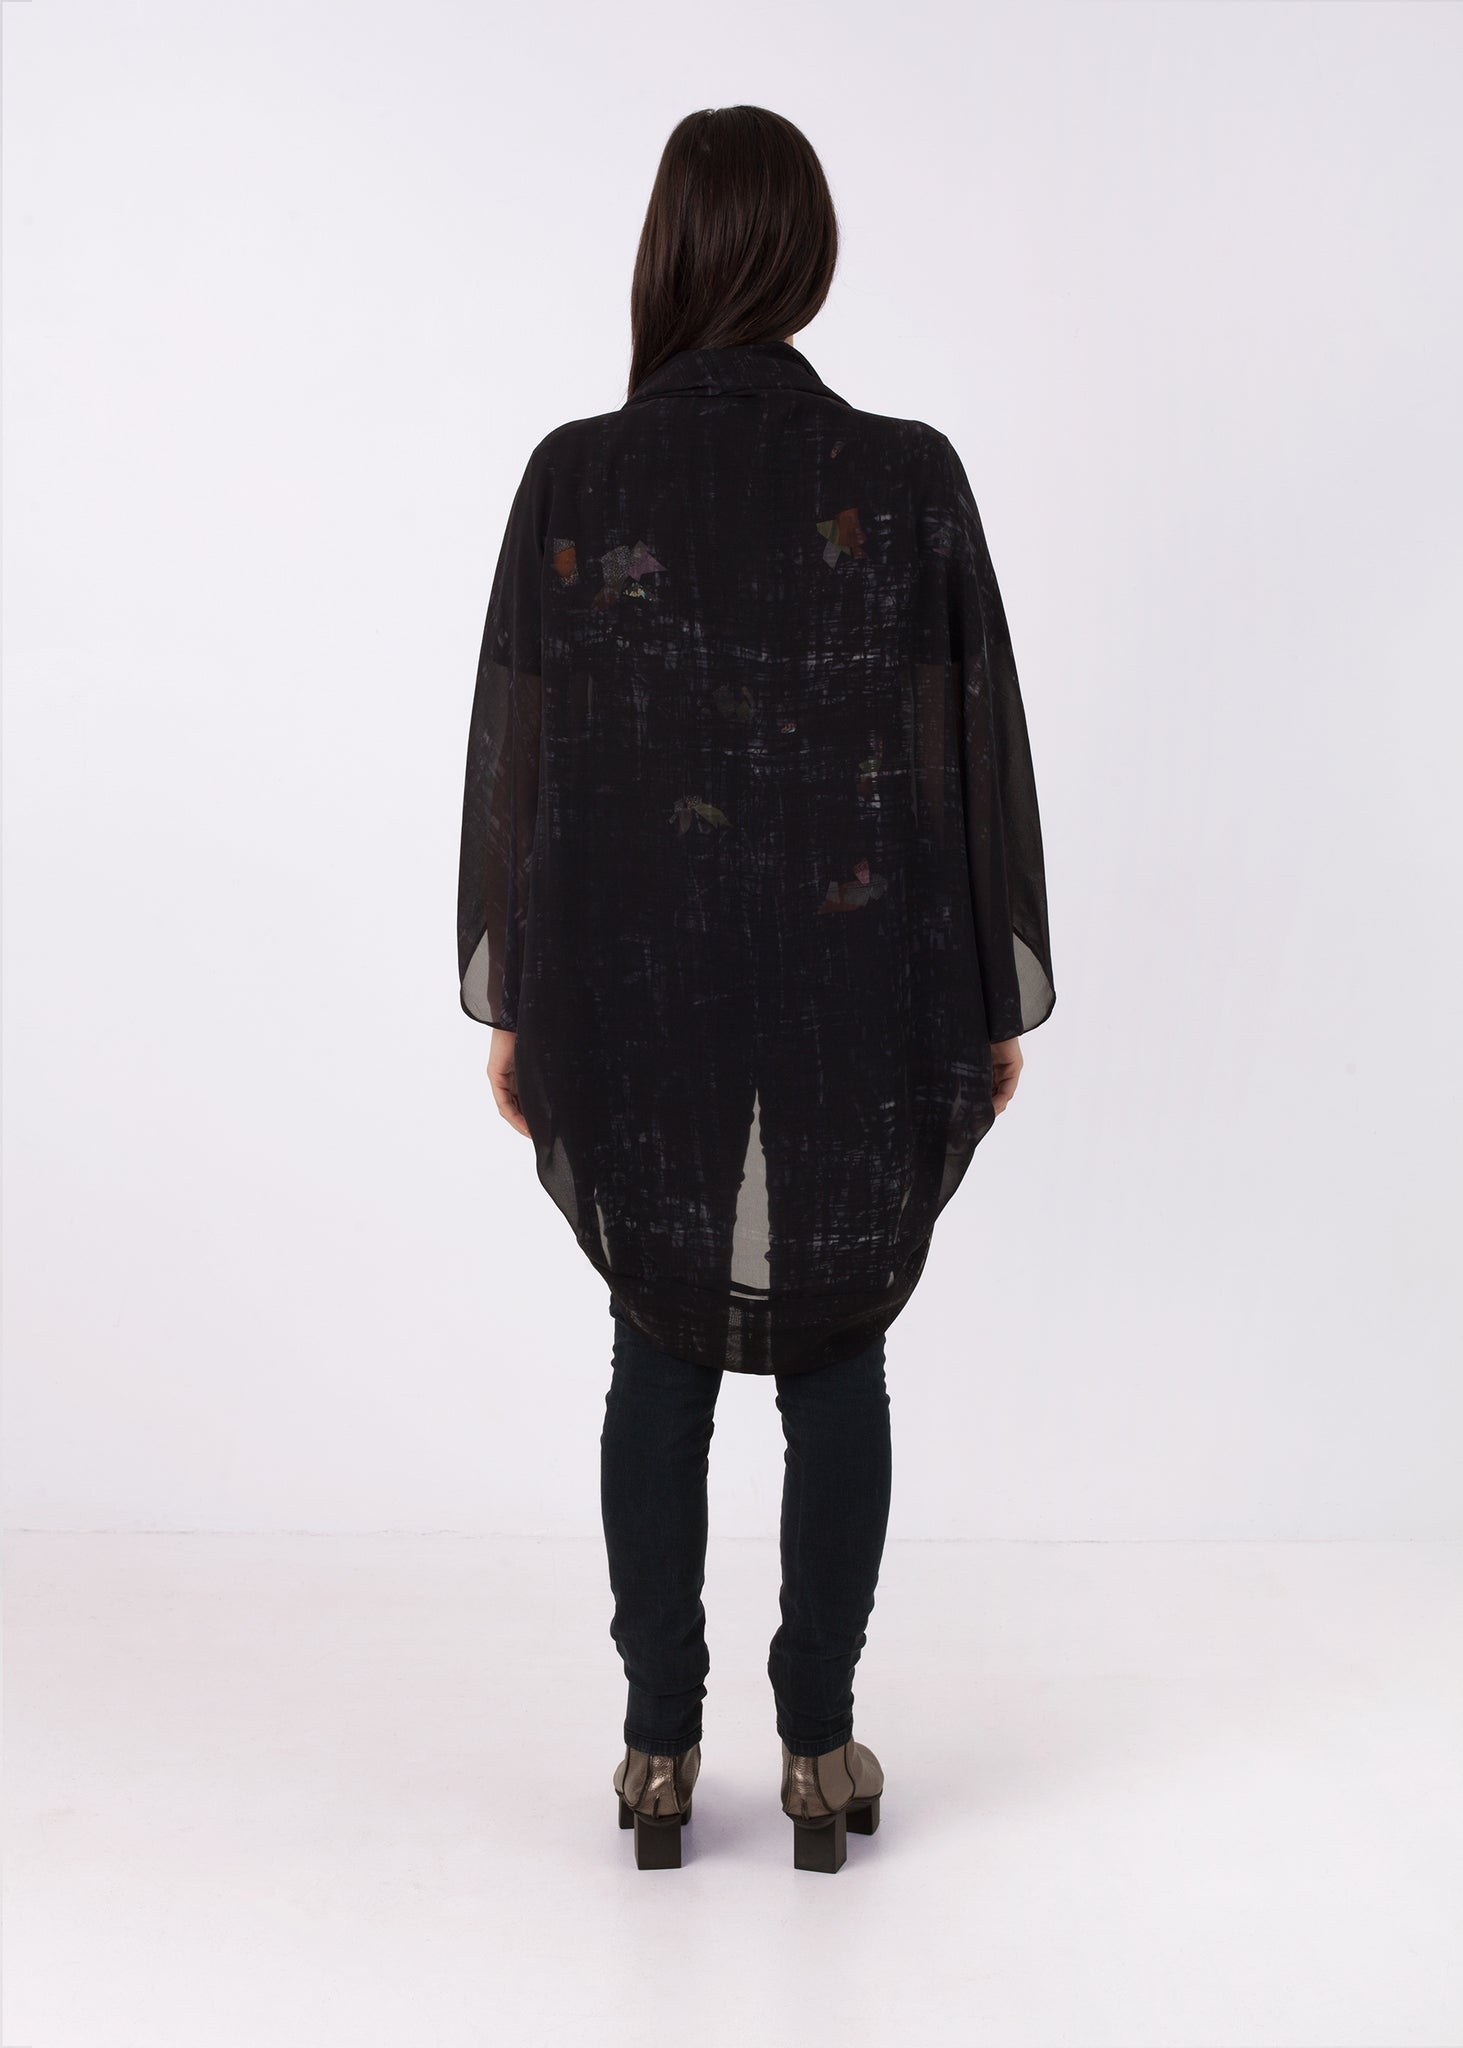 Fraser Crowe Featherweight Kimono Black Square Scribble, ethical fashion, sustainable fashion, designer clothes, plus size clothing, textile print clothing, luxury online fashion, slow fashion